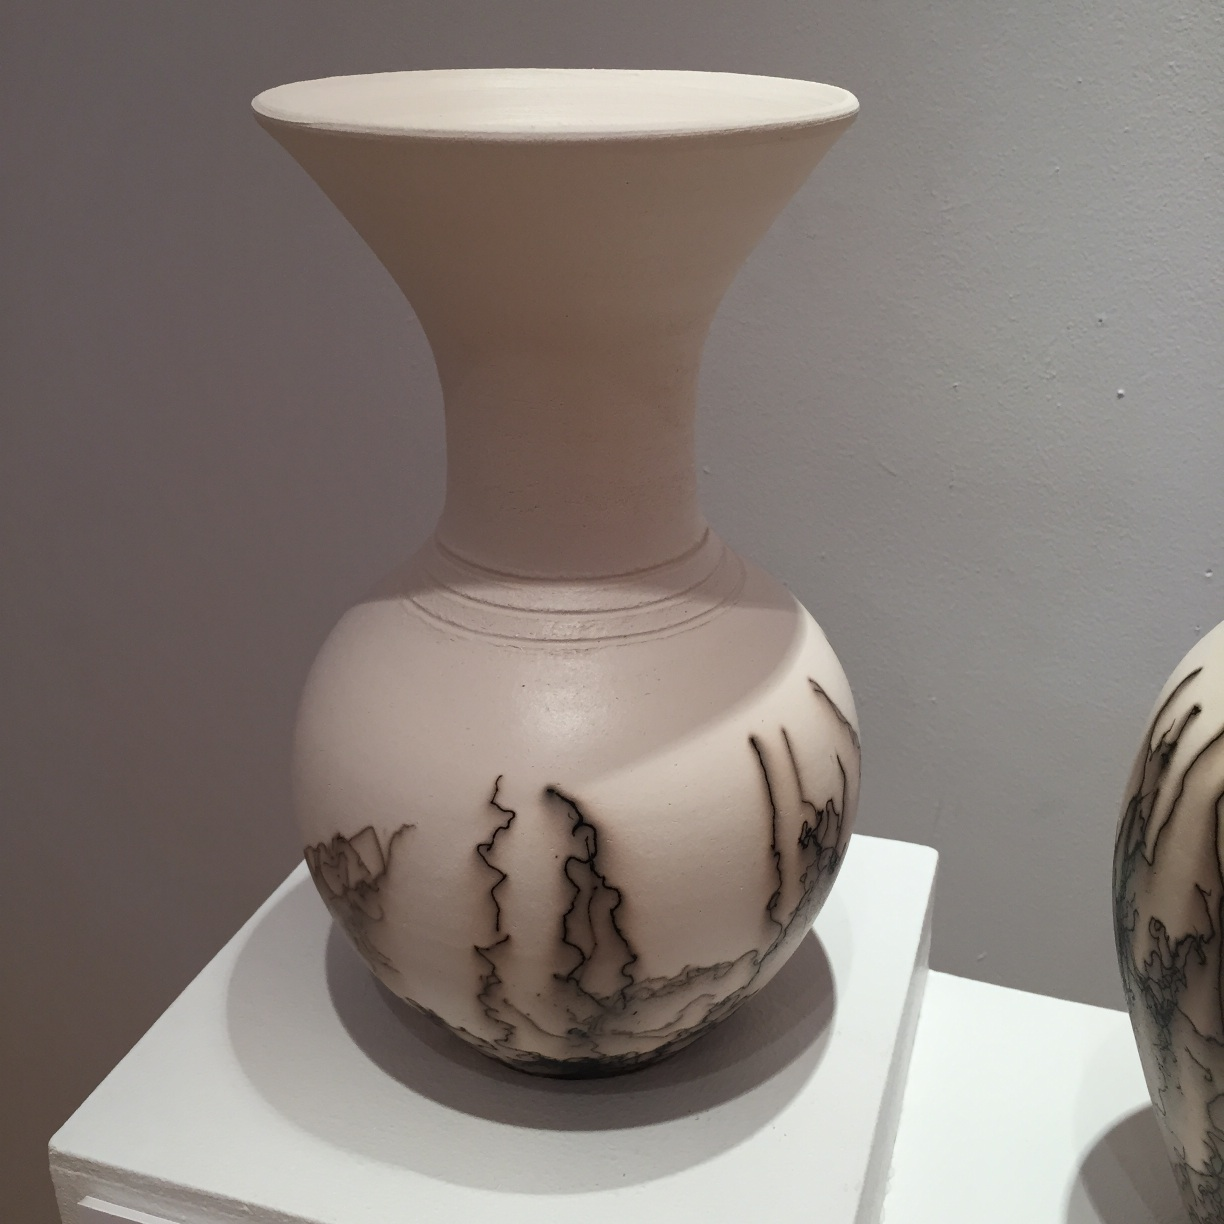 Claire Molloy, Medium Long-Necked Vessel, horsehair embellished ceramic, 25 x 13cm, EUR 130 SOLD